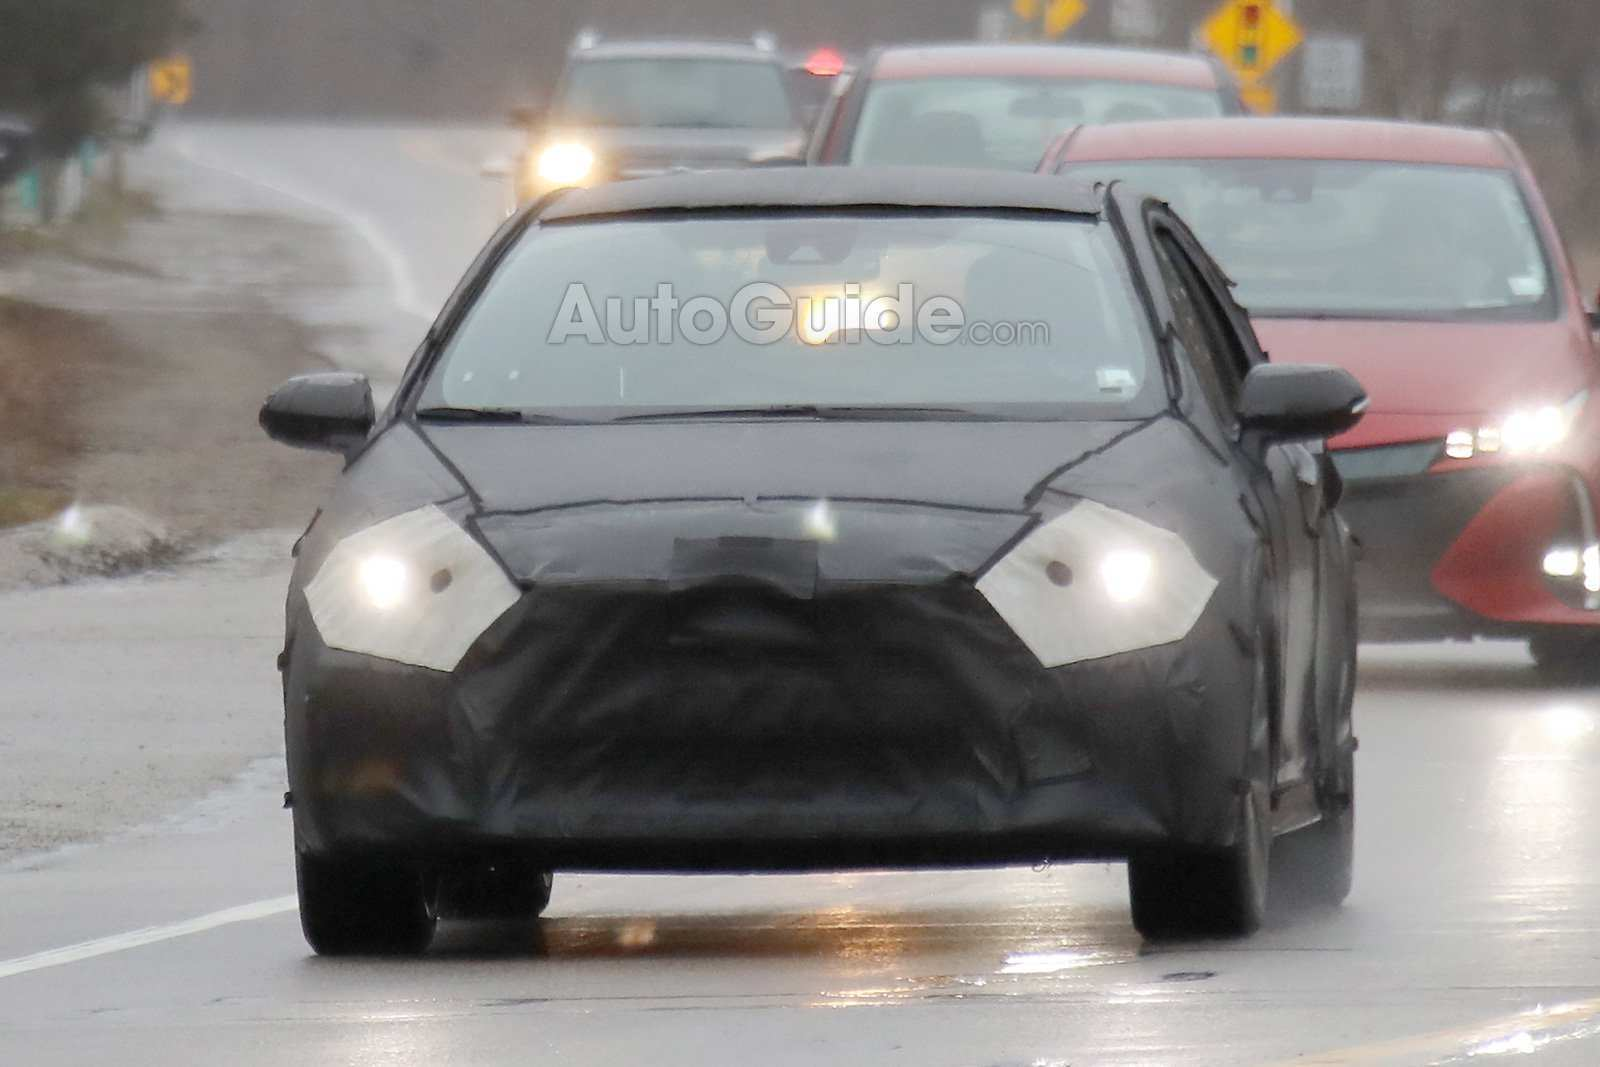 50 New 2020 Spy Shots Toyota Prius Release Date And Concept